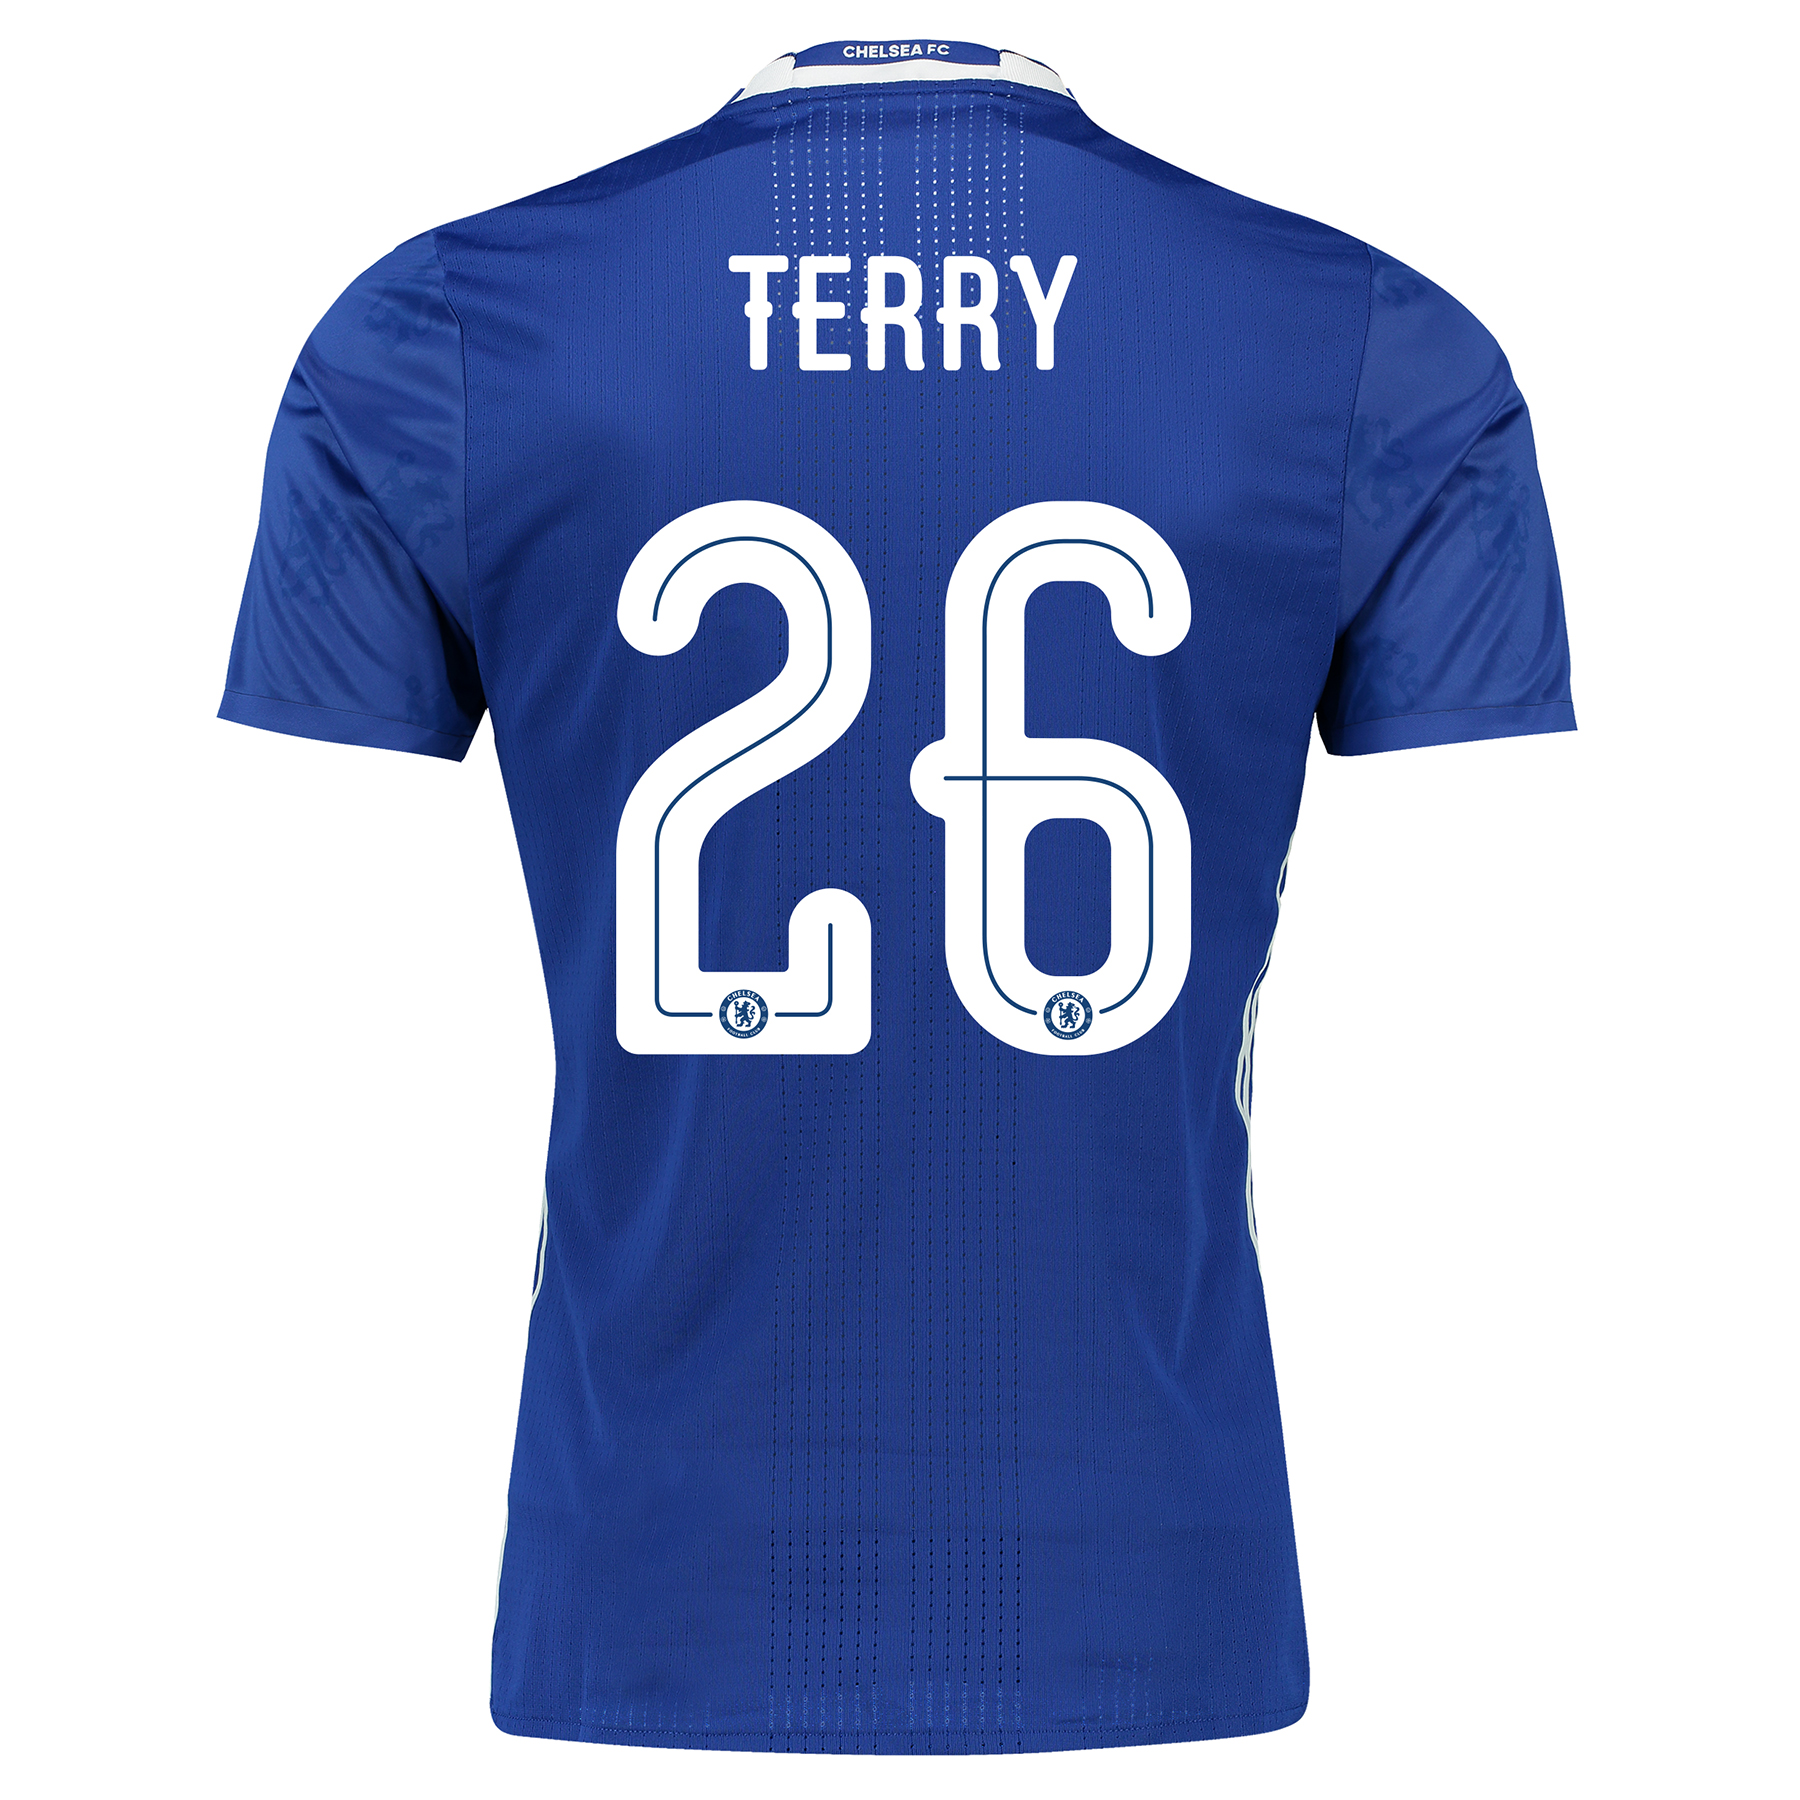 Chelsea Linear Home Adi Zero Shirt 2016-17 with Terry 26 printing